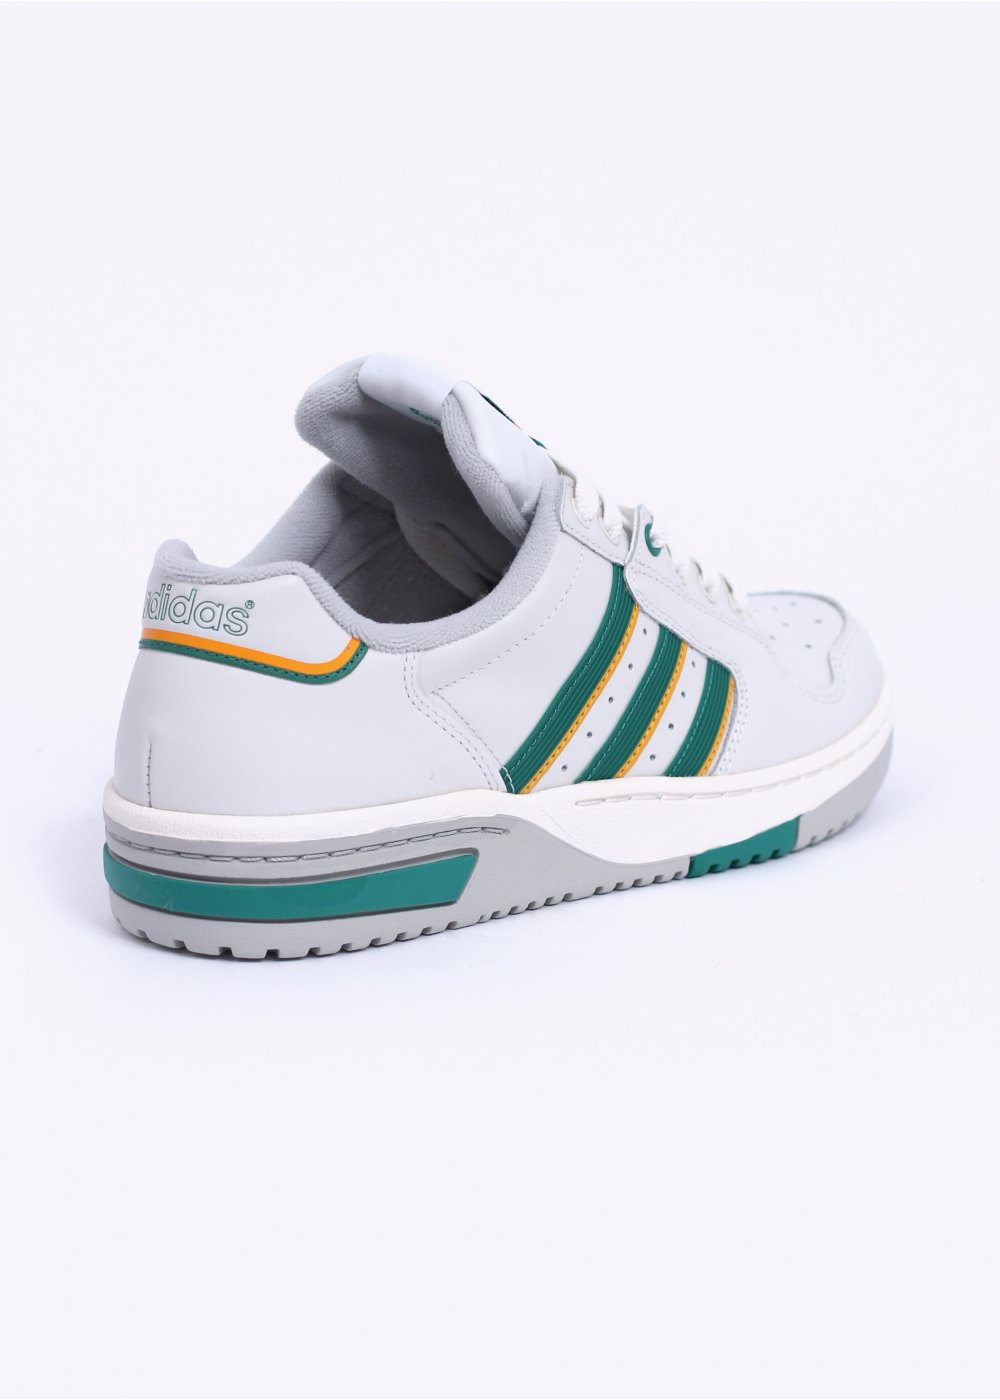 Adidas Originals Edberg 86 Trainers White Green